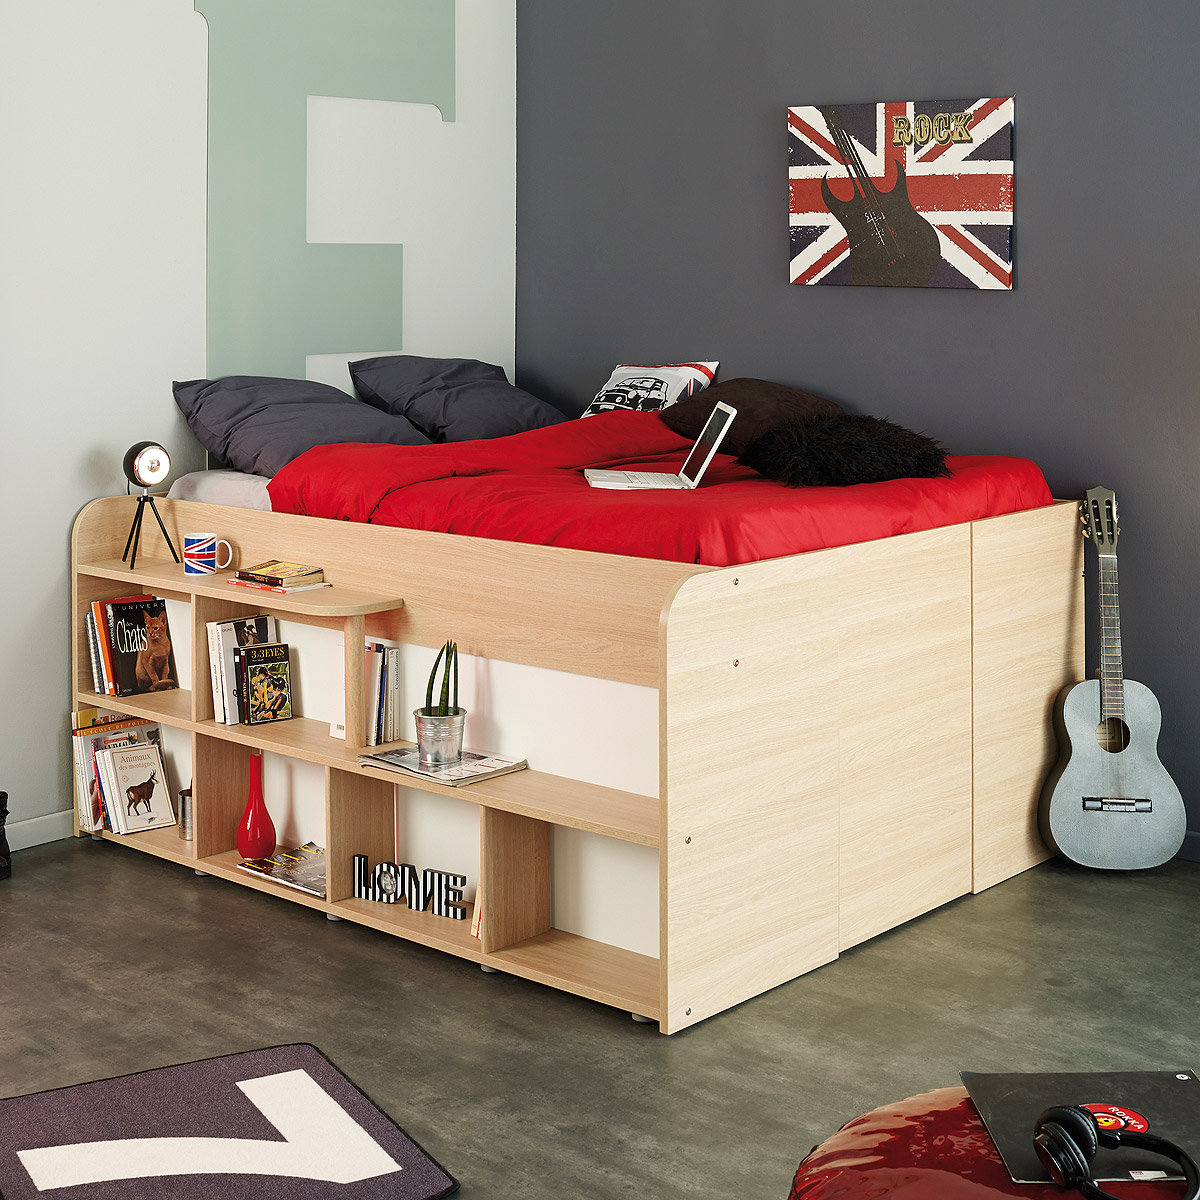 space up bett in baltimore eiche mit stauraum und hydraulik 140x200. Black Bedroom Furniture Sets. Home Design Ideas